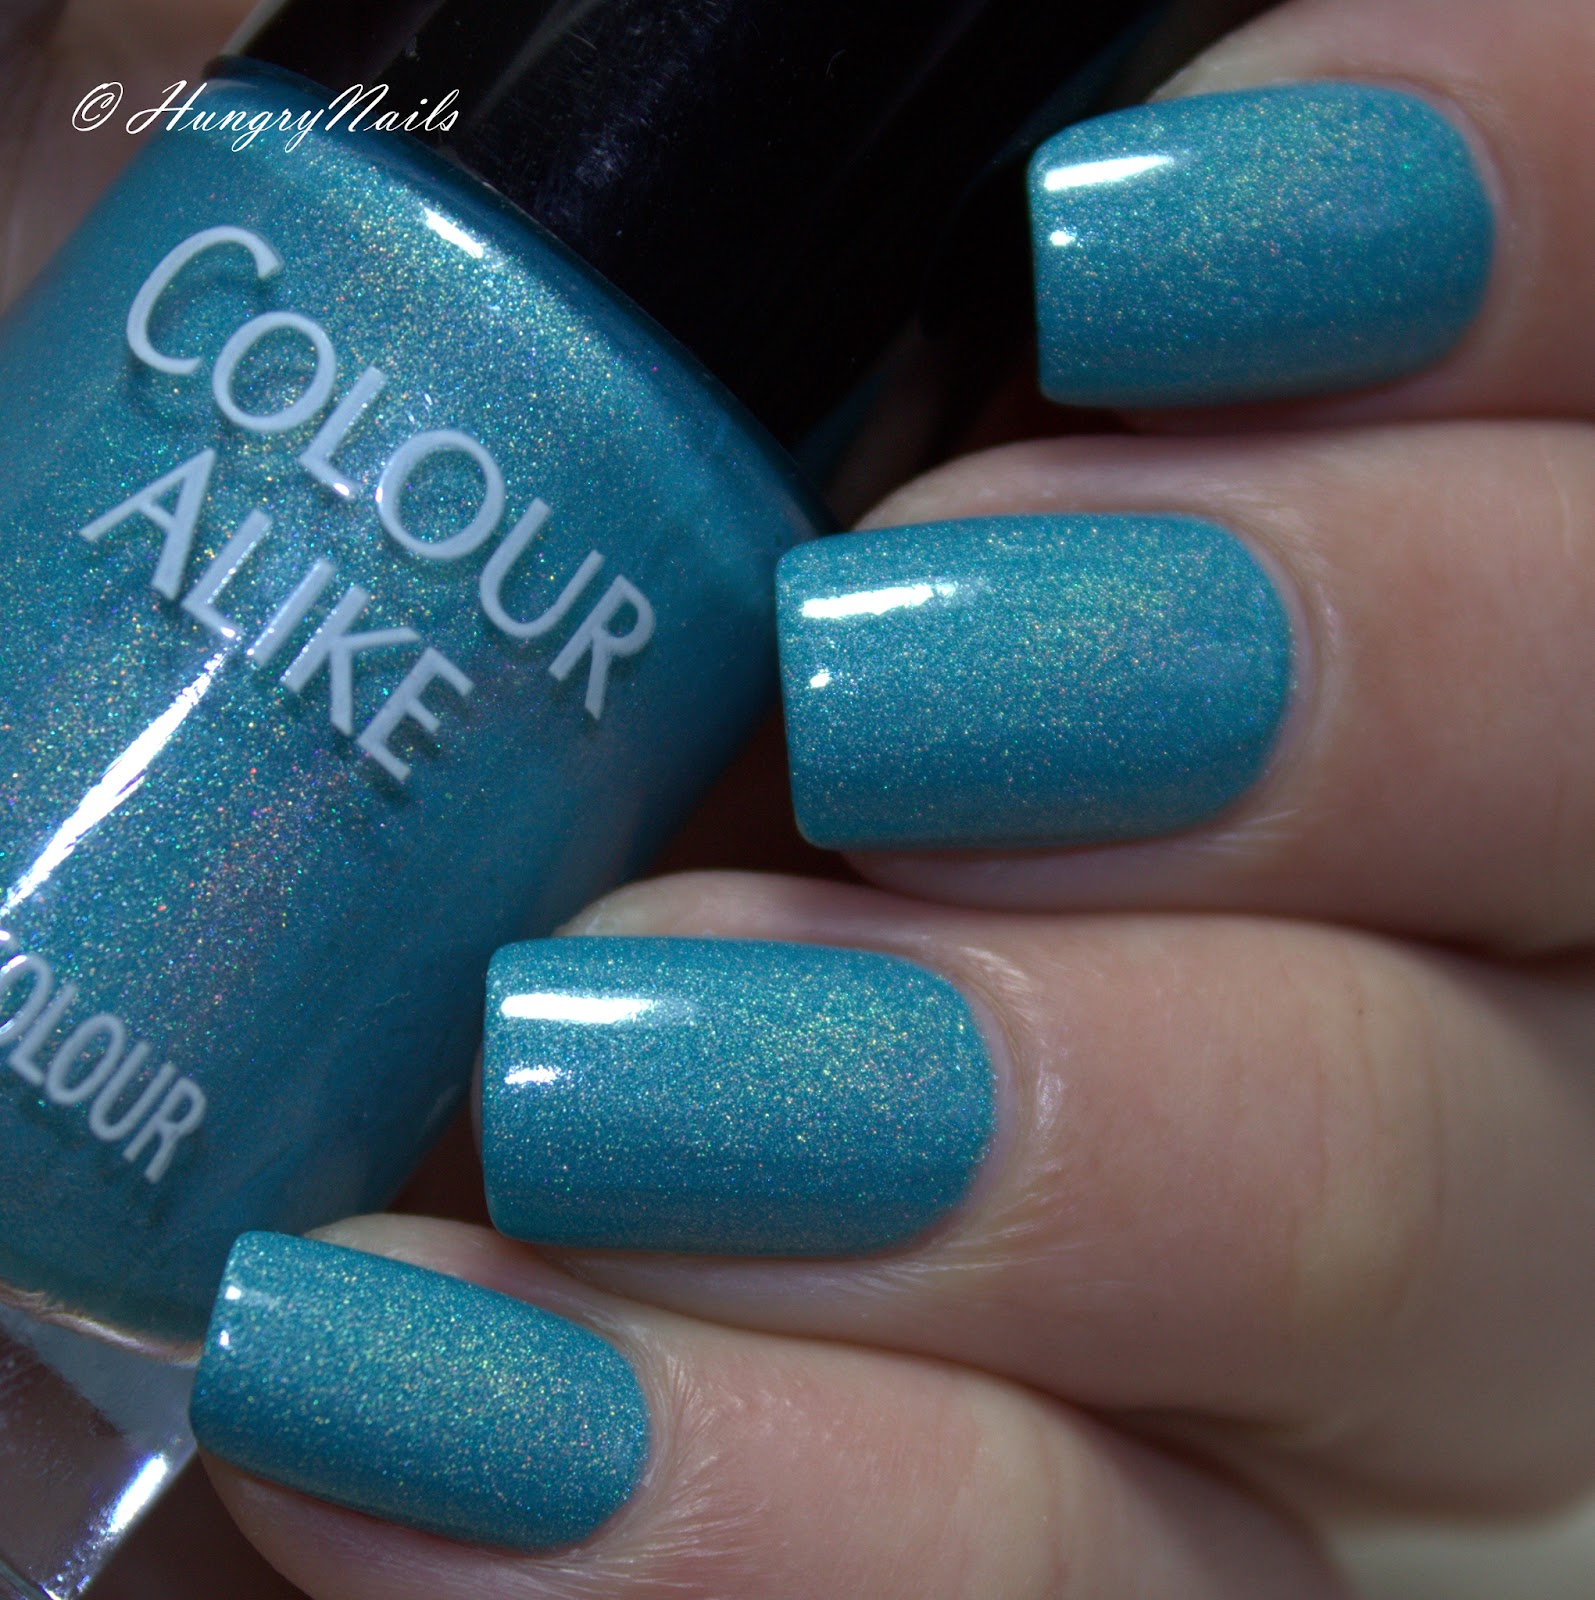 http://hungrynails.blogspot.de/2015/01/colour-alike-512.html